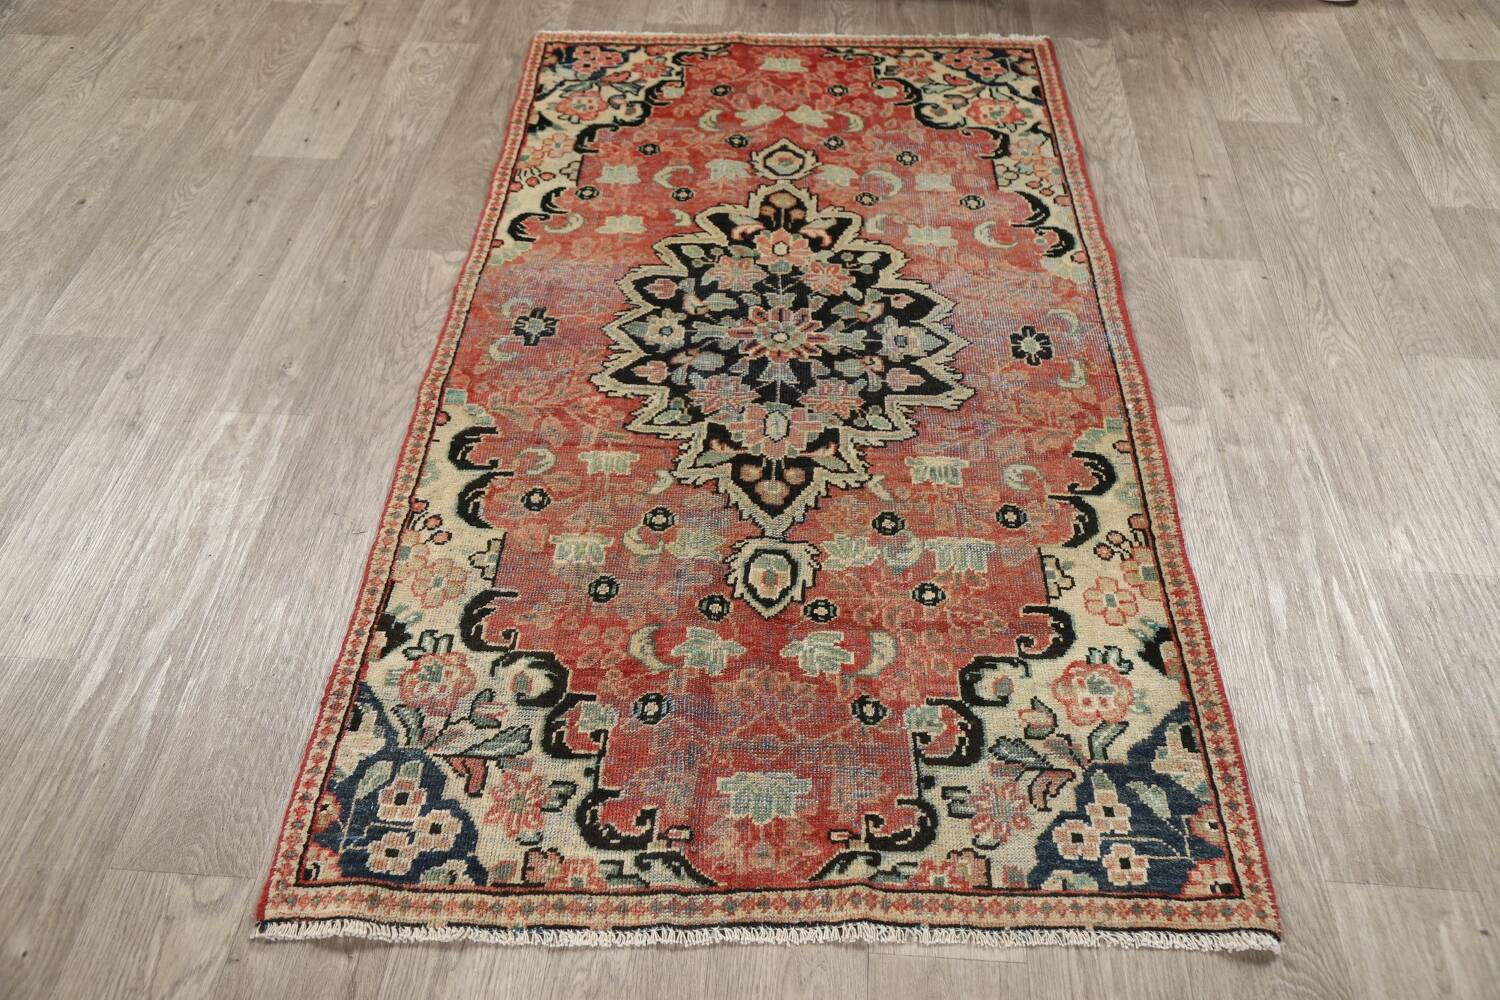 Antique Floral Mahal Persian Area Rug 3x6 image 18